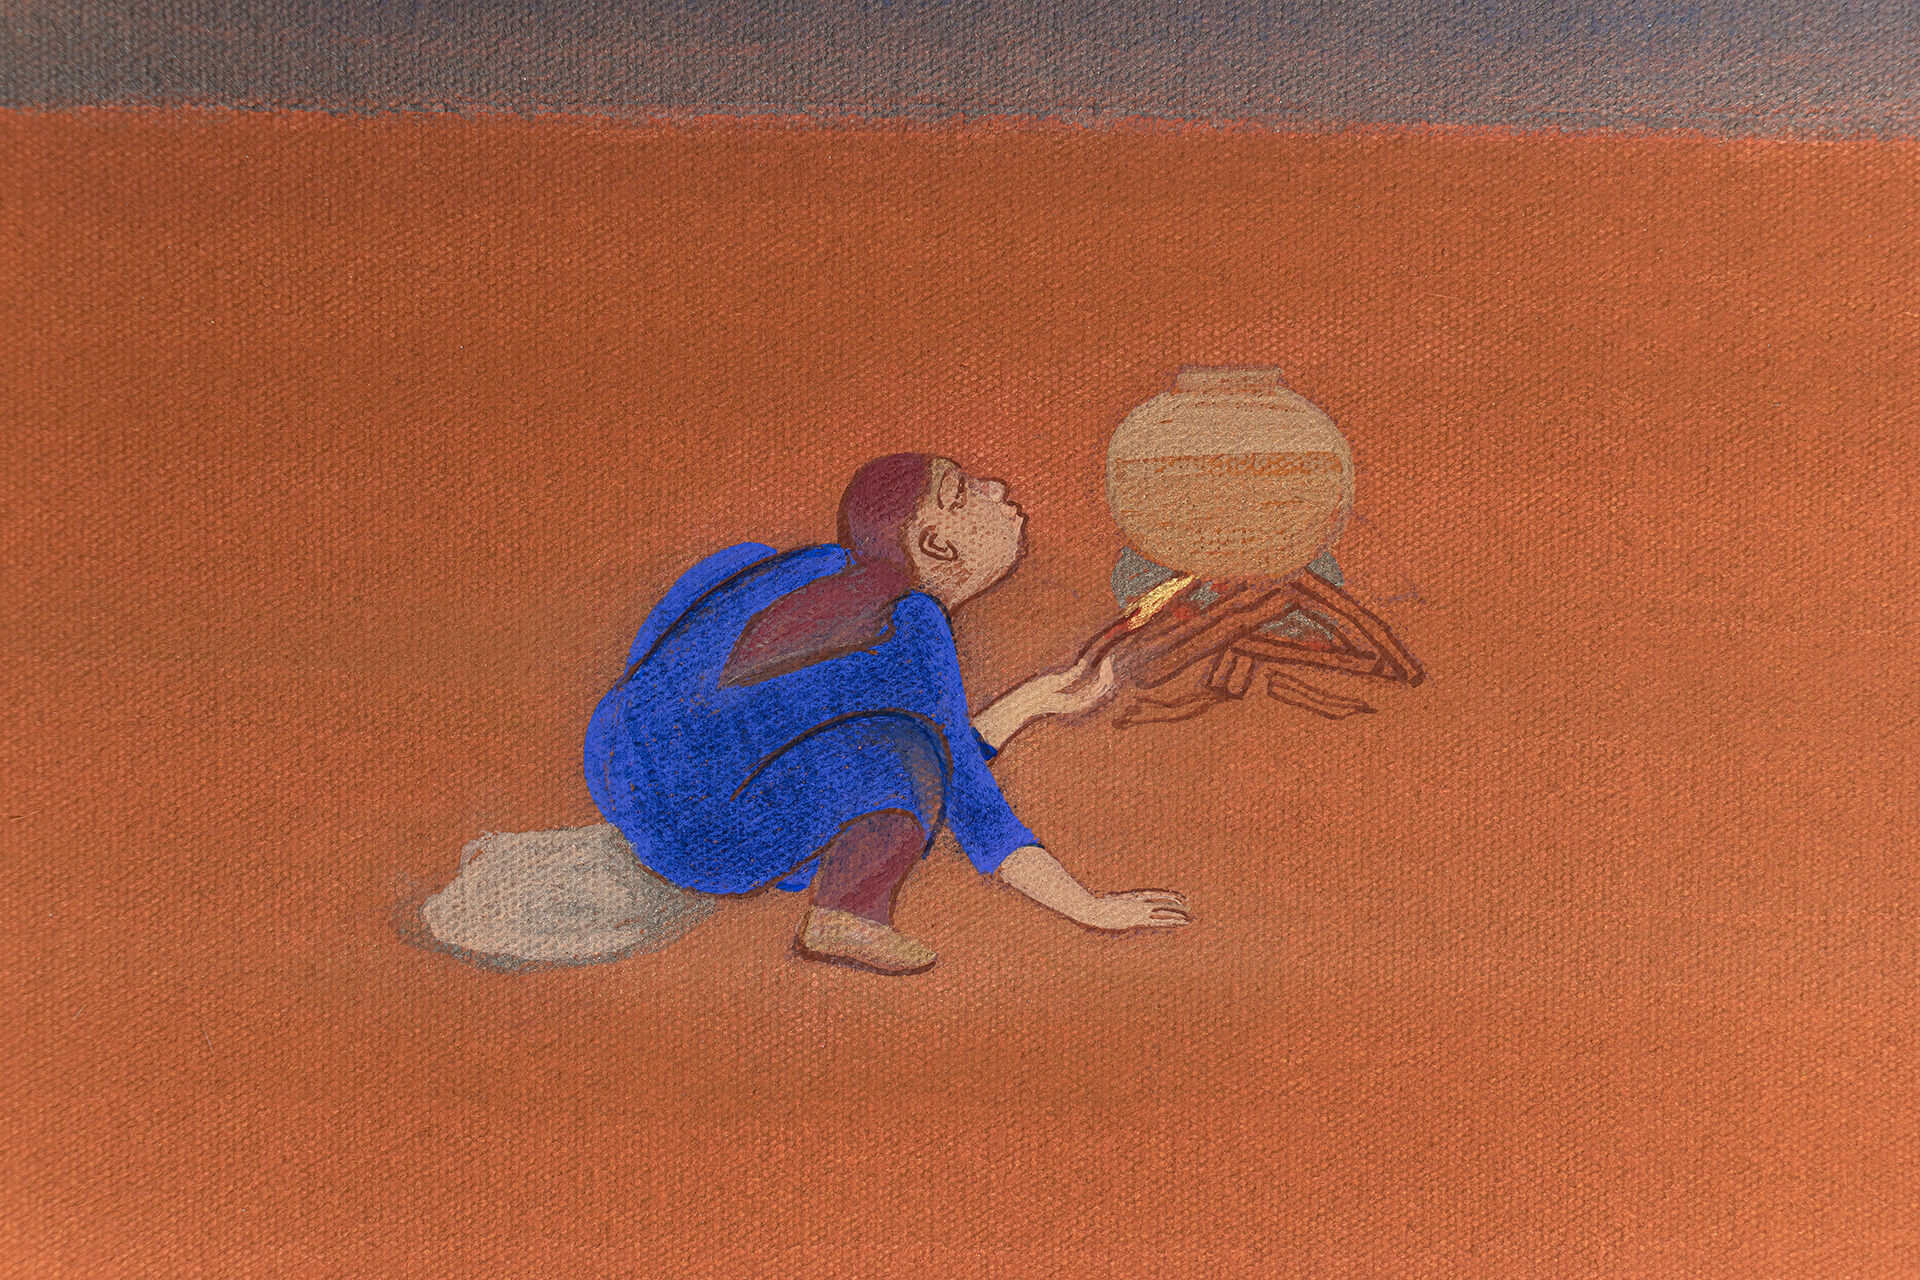 The solitary figure preparing a meal serves as a reminder of the transformative resilience of women in the face of trauma | Chemould Prescott Road| STIRworld